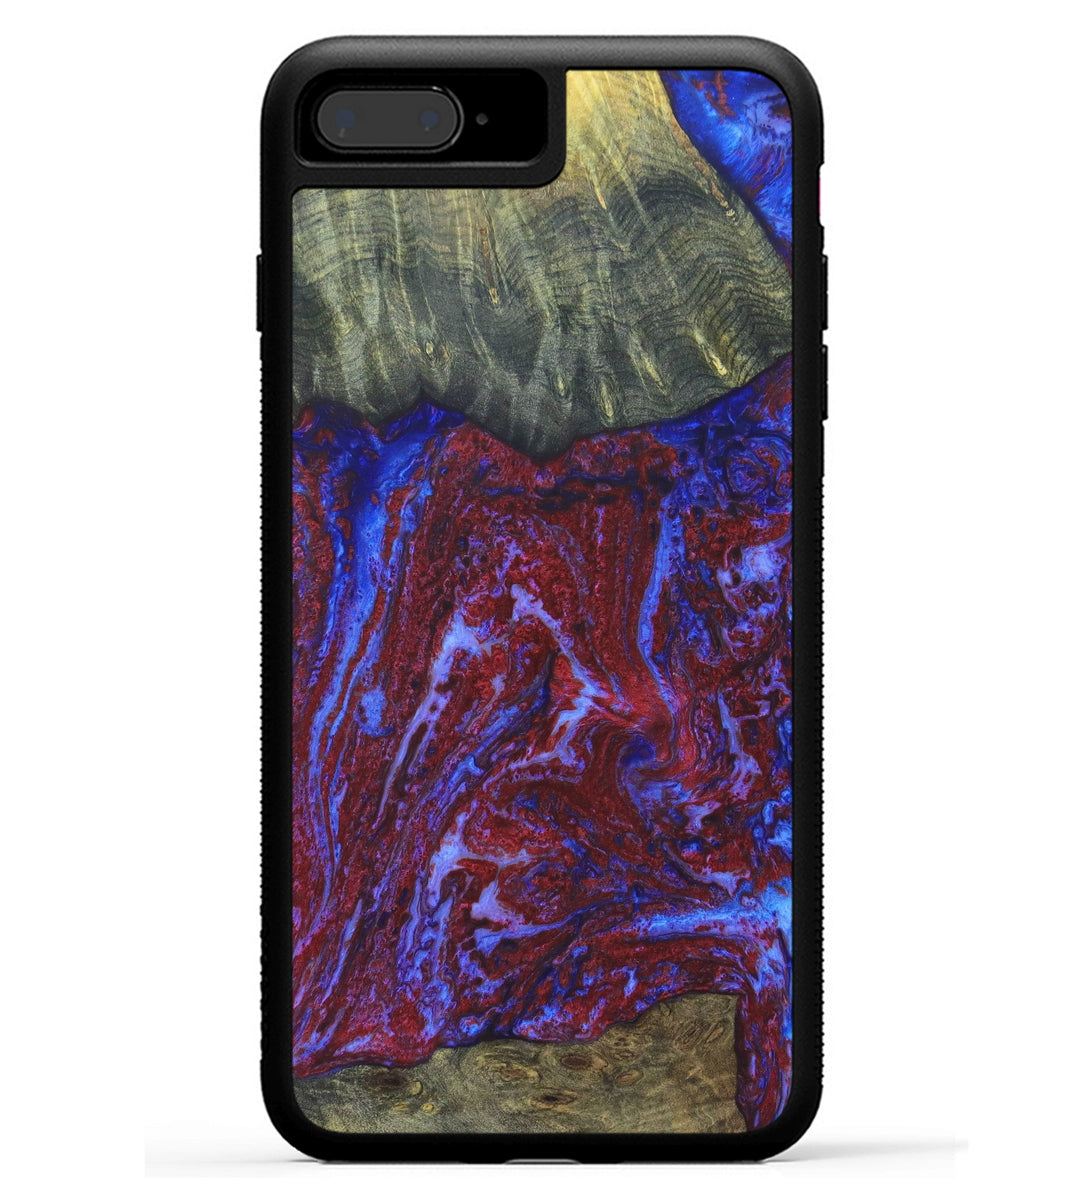 iPhone 8 Plus Wood+Resin Case - Jeralee (Blue & Red, 334399)